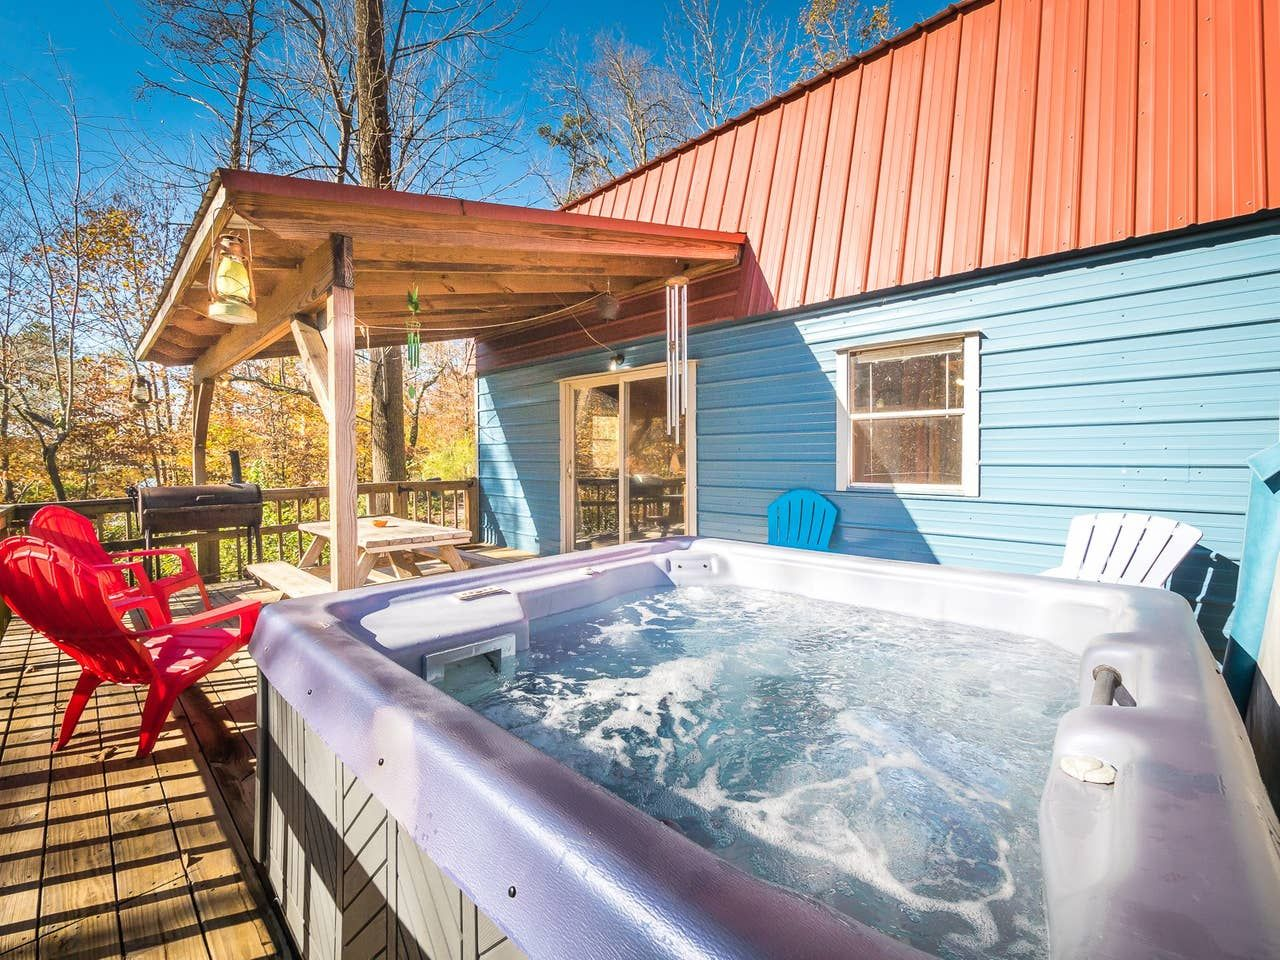 living in a shed with a hot tub